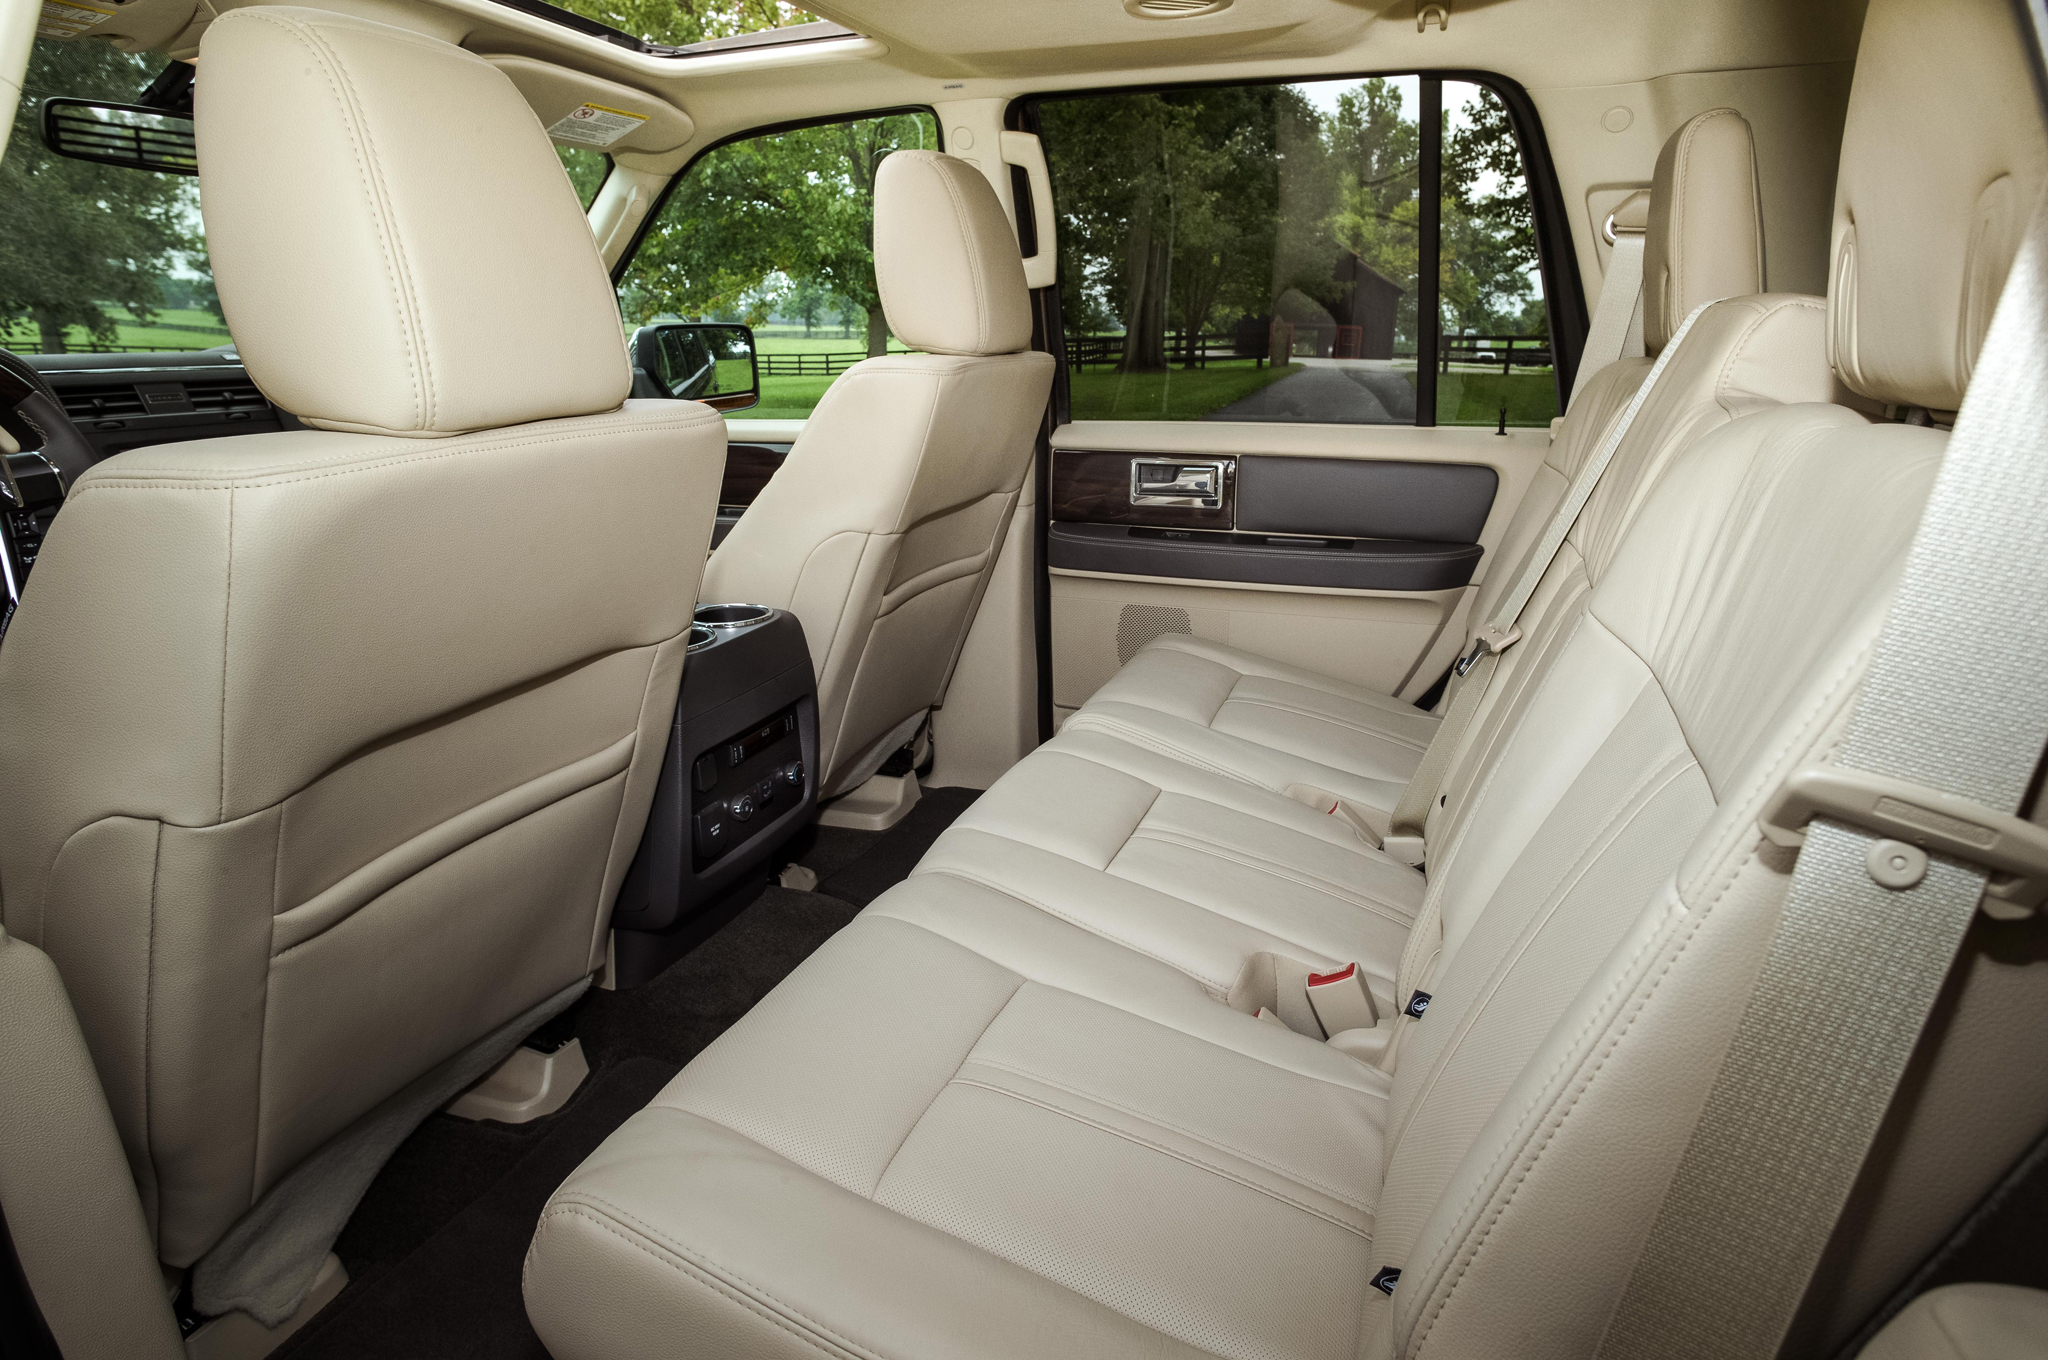 2015 Lincoln Navigator Second Seats Interior